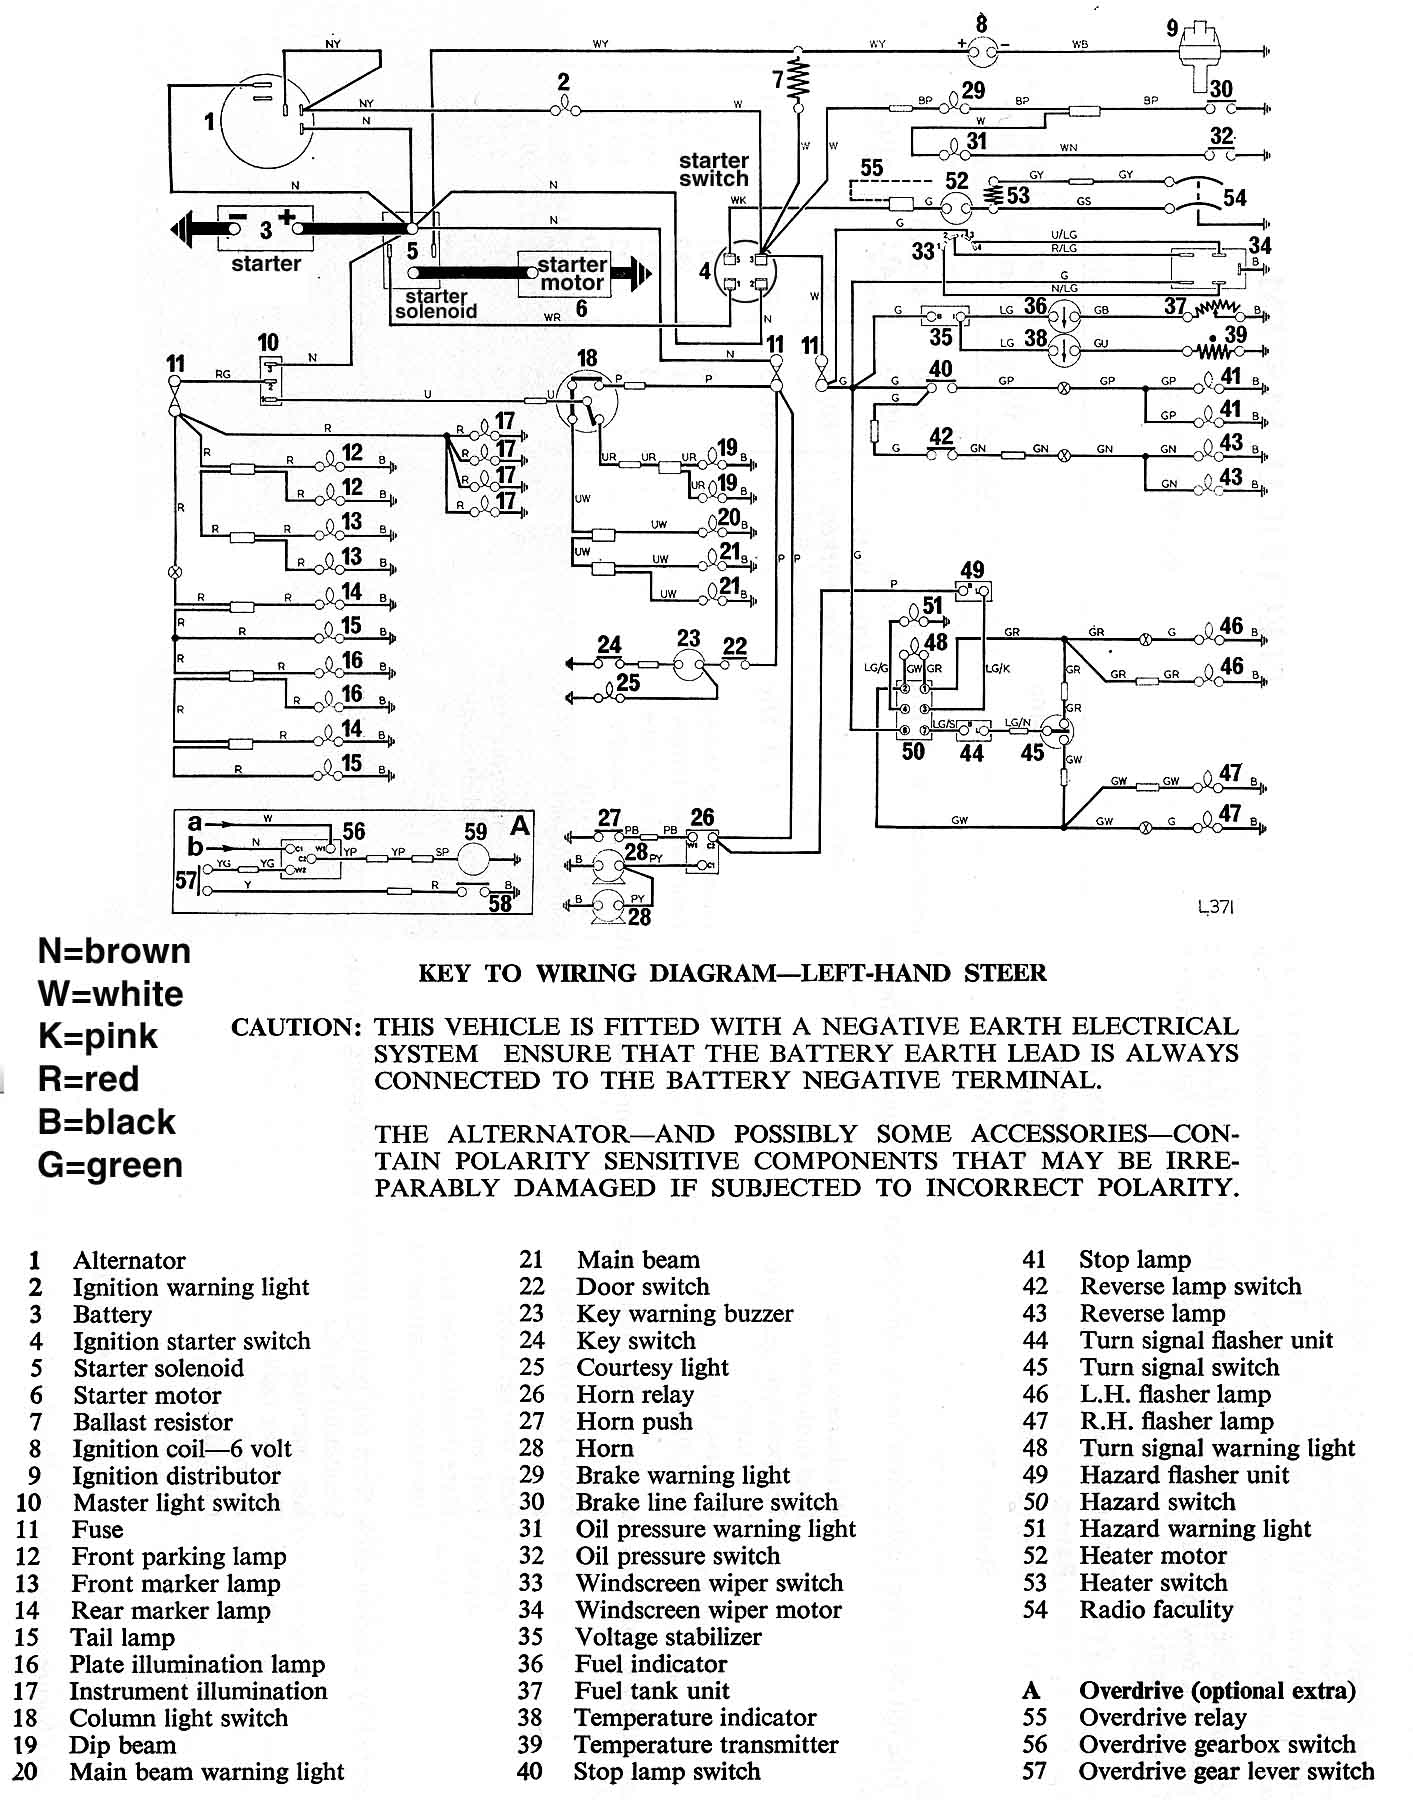 MKIVwire 1974 spitfire 1500 wire diagram spitfire & gt6 forum triumph 2002 5.4 Wiring Harness Diagram at mifinder.co